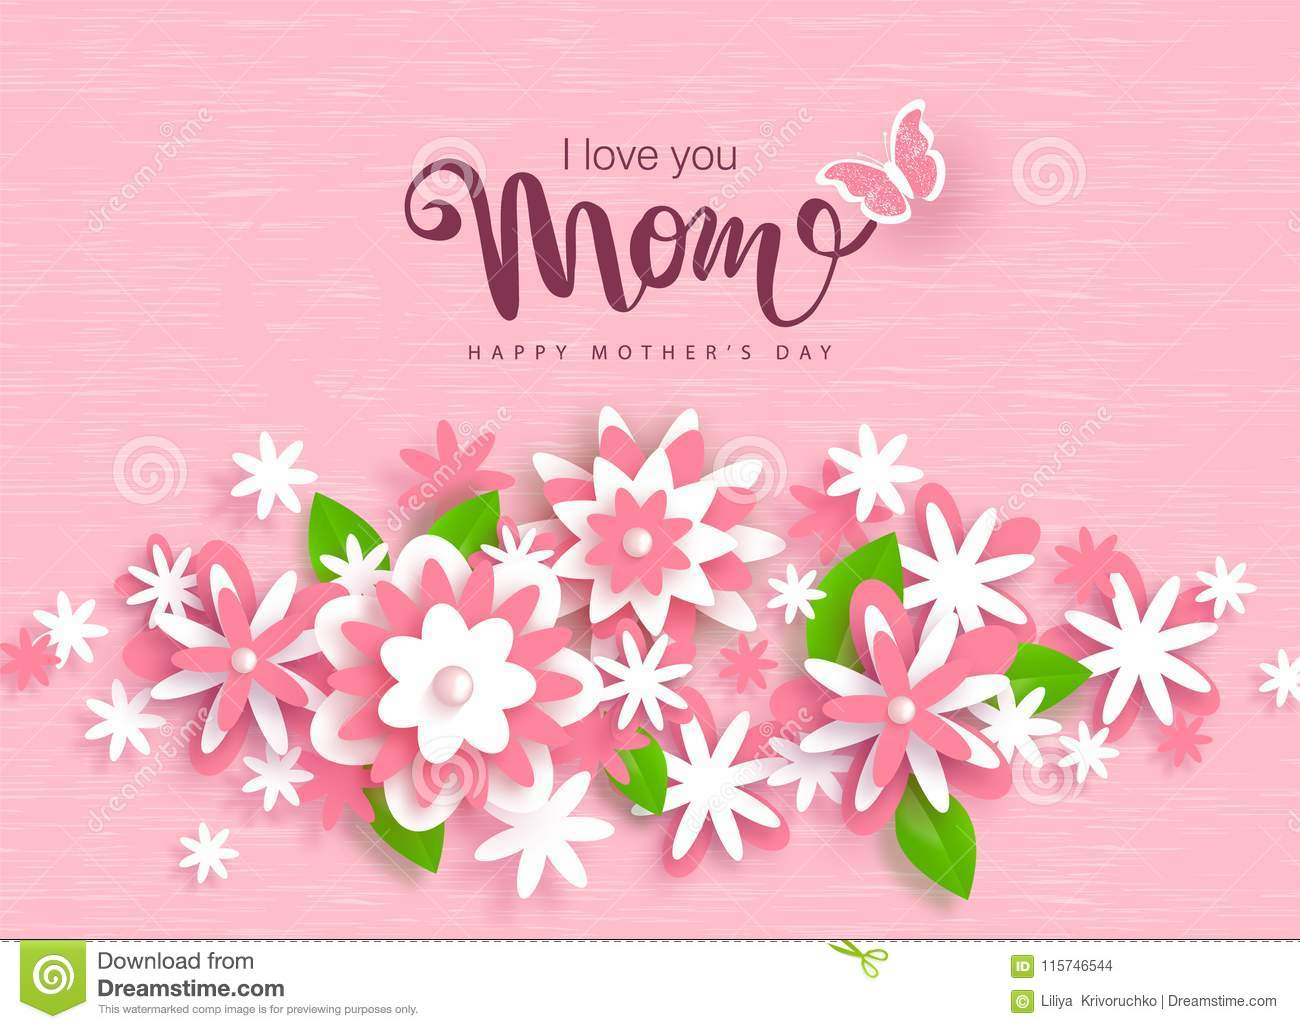 Happy Mothers Day Greeting Card Design With Beautiful Paper Flowers